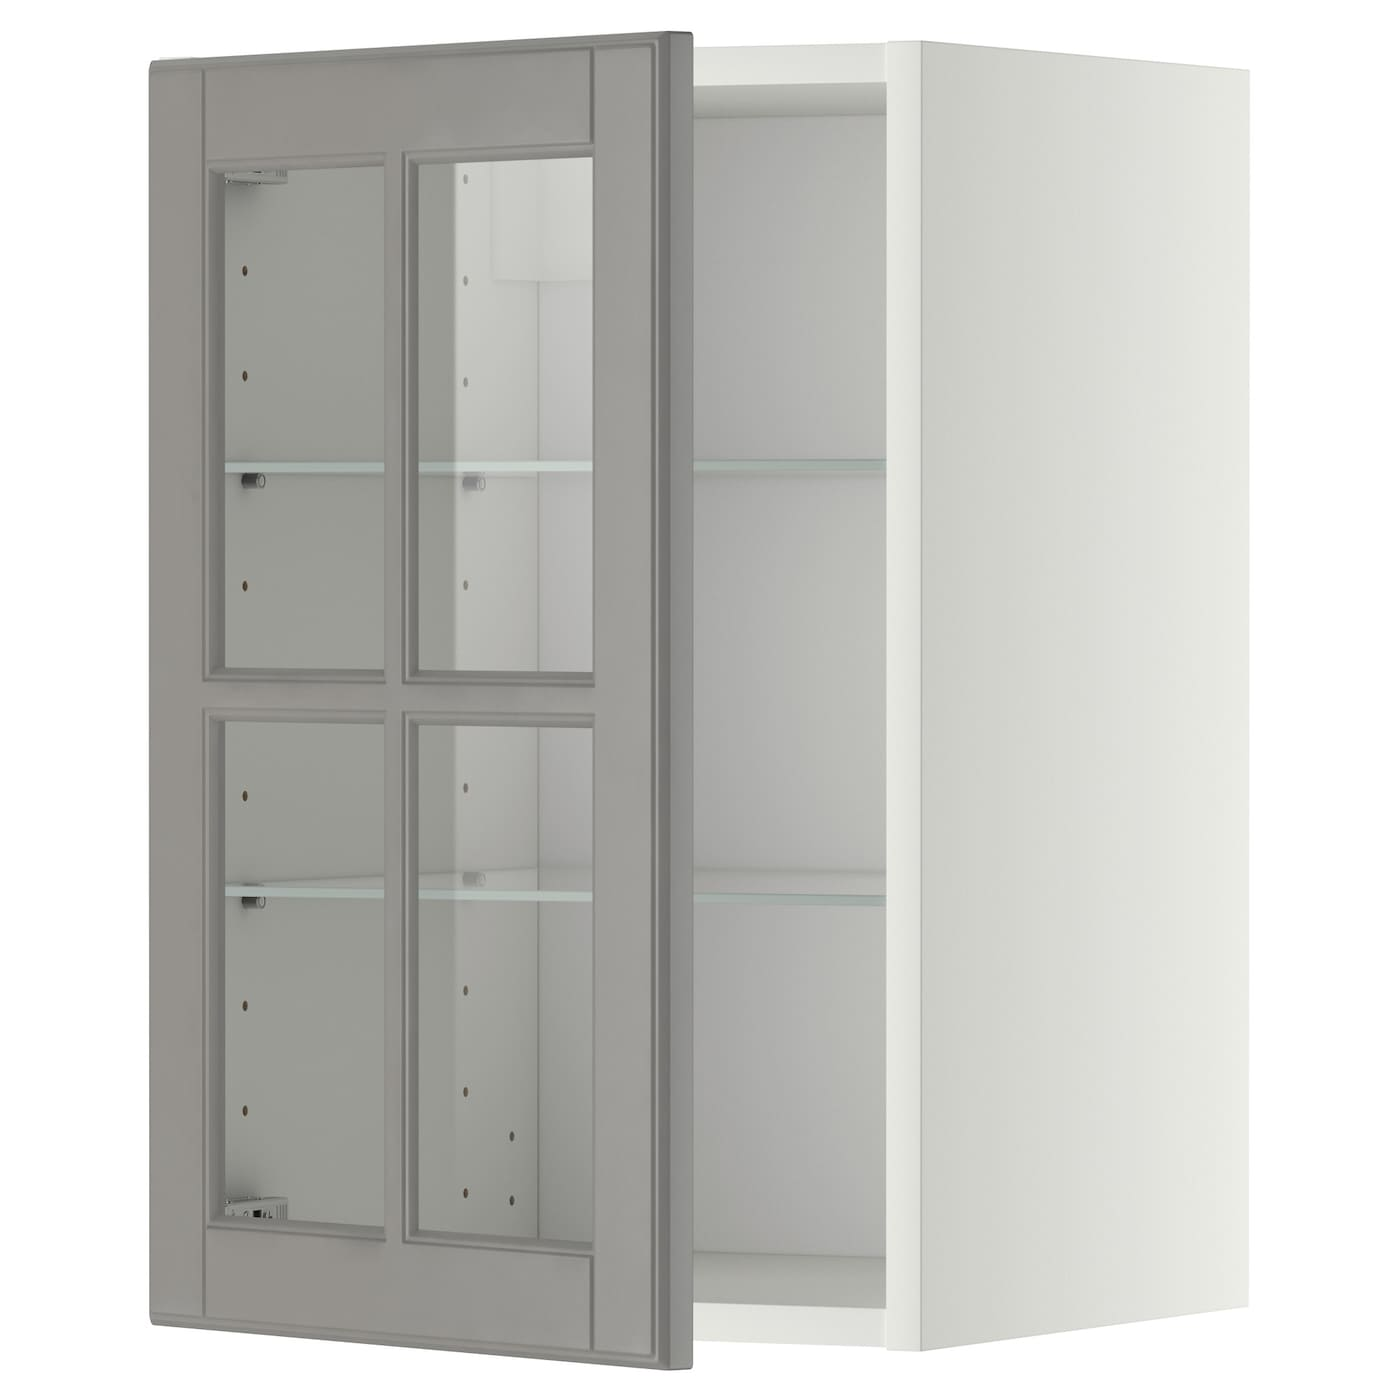 glass door kitchen wall cabinet metod wall cabinet w shelves glass door white bodbyn grey 6813